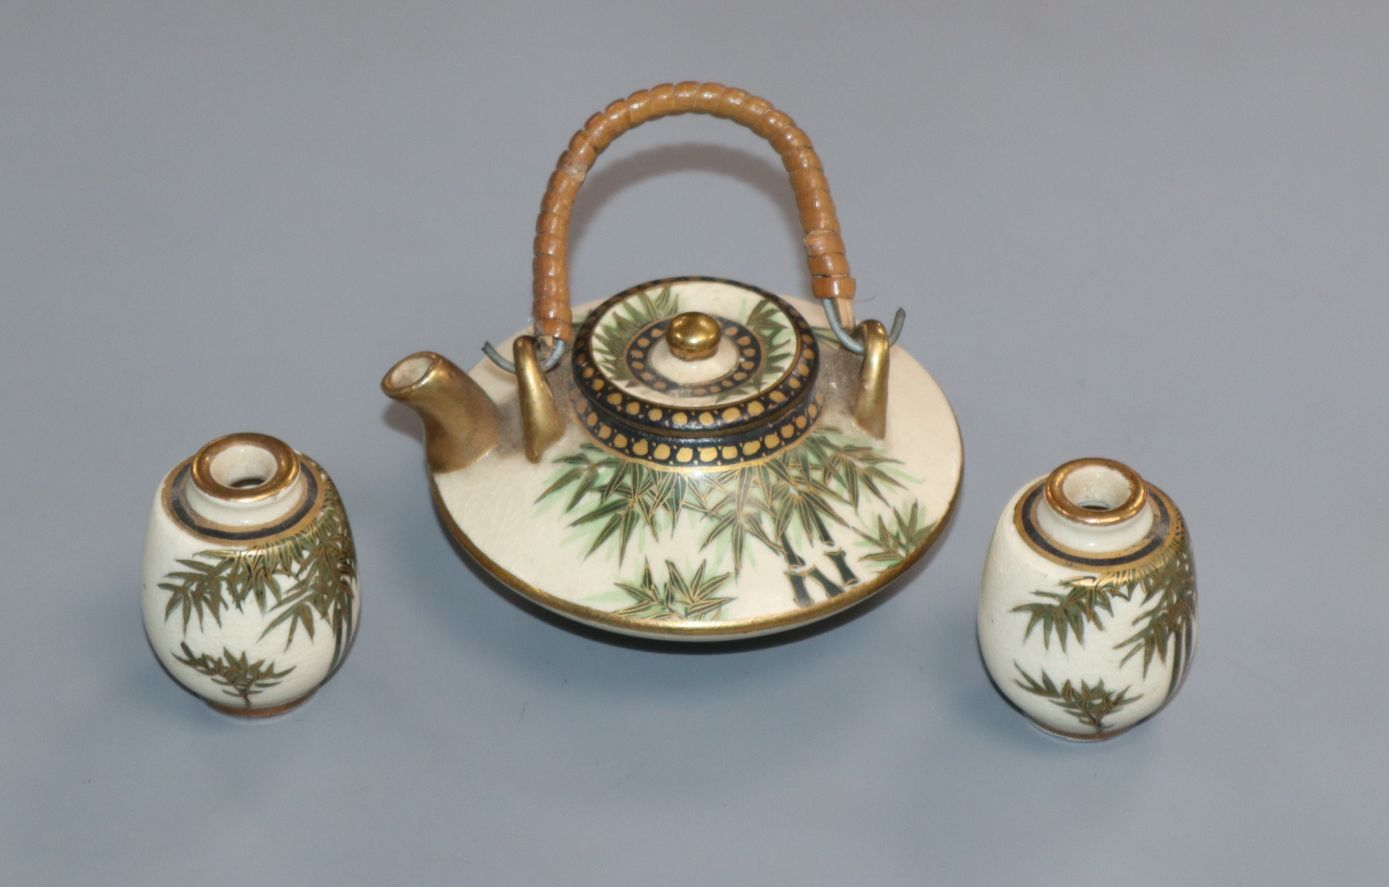 Lot 296 - A Japanese Satsuma pottery miniature tea pot and two vases Provenance - The owner and her family